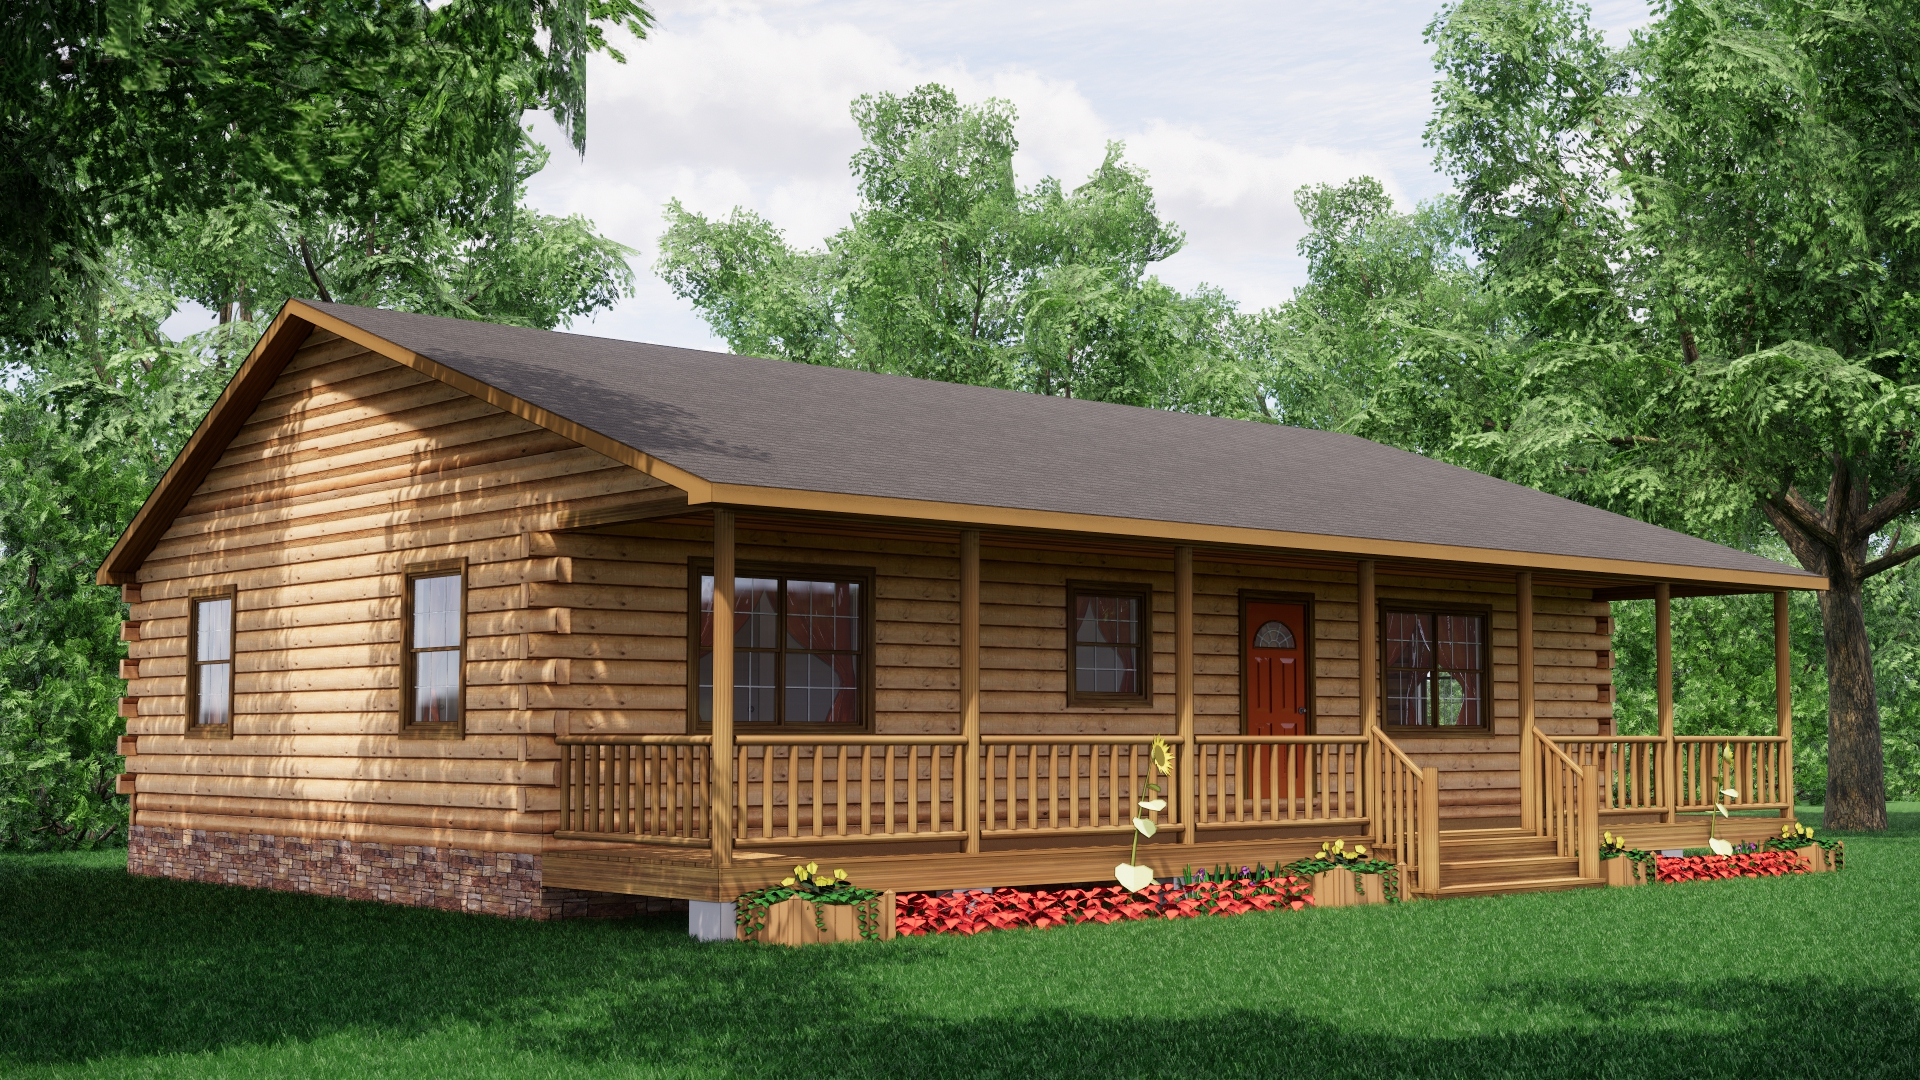 Edenton Log Cabin Plan 1